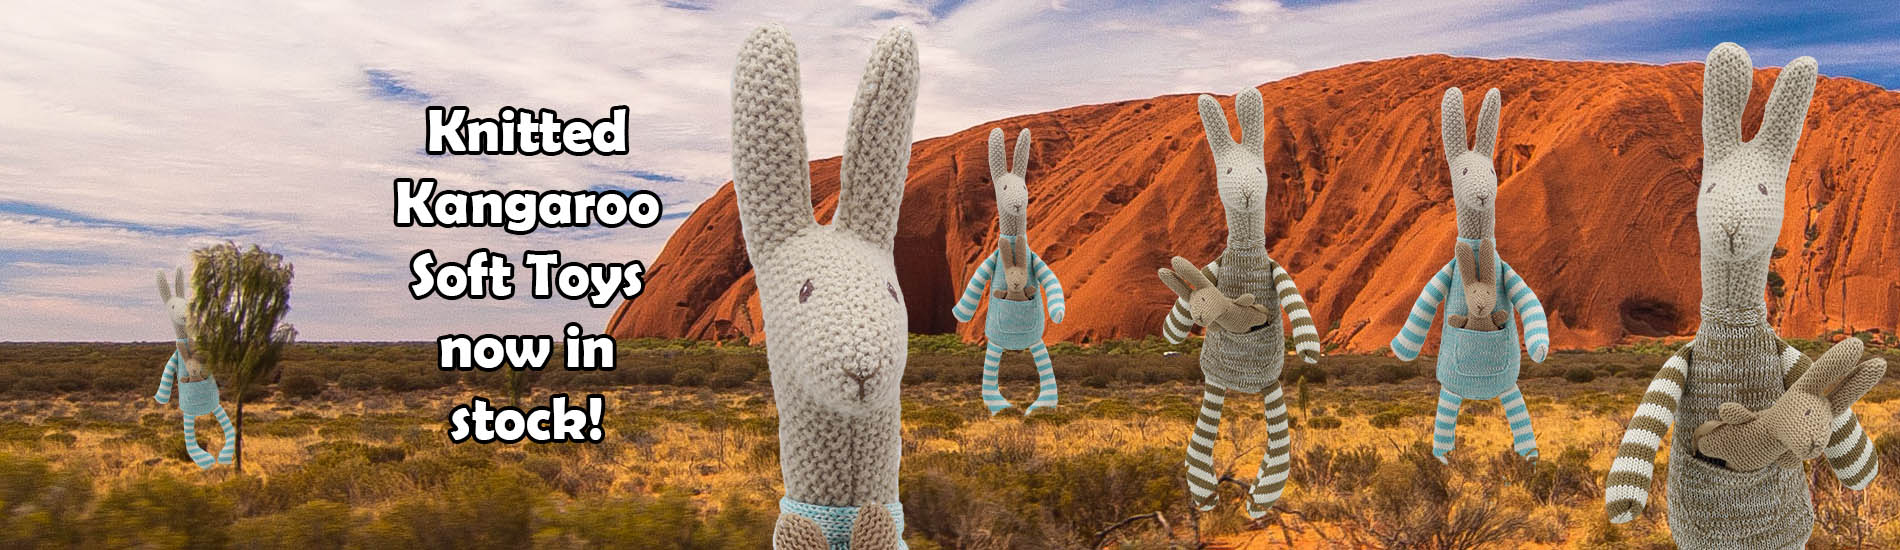 knited-kangaroos-new